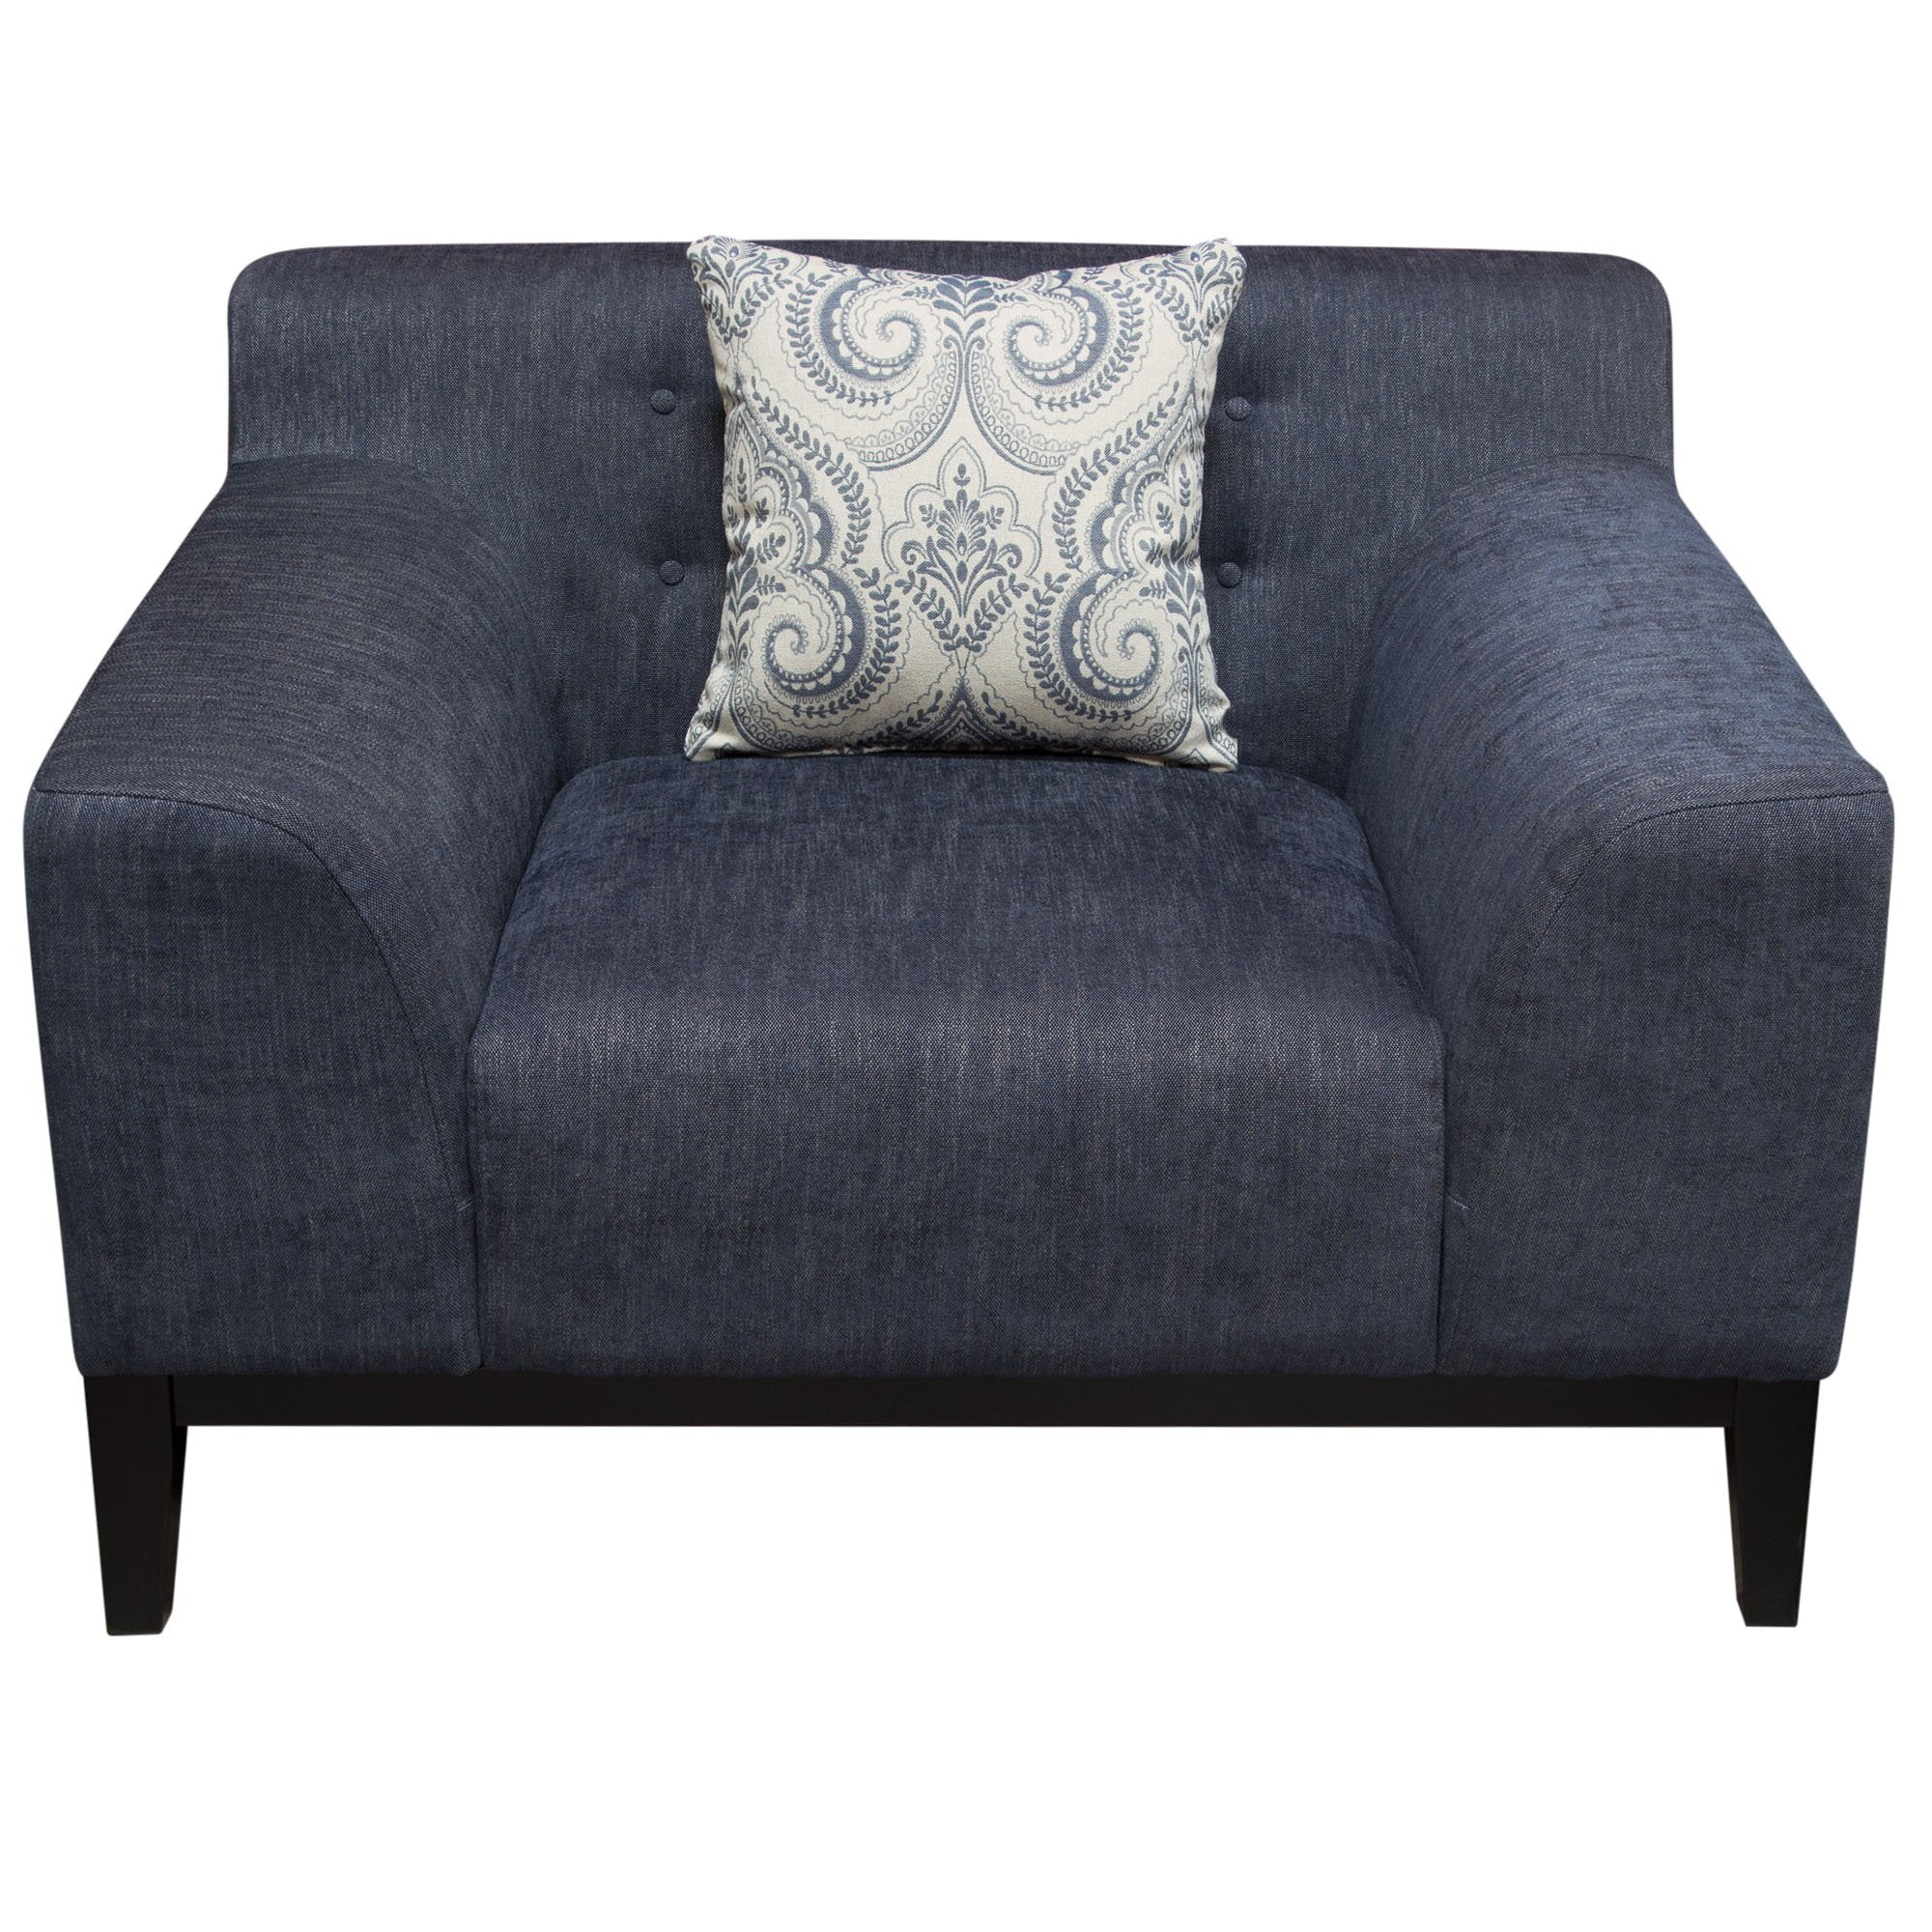 Marquee Tufted Back Chair in Panama Blue